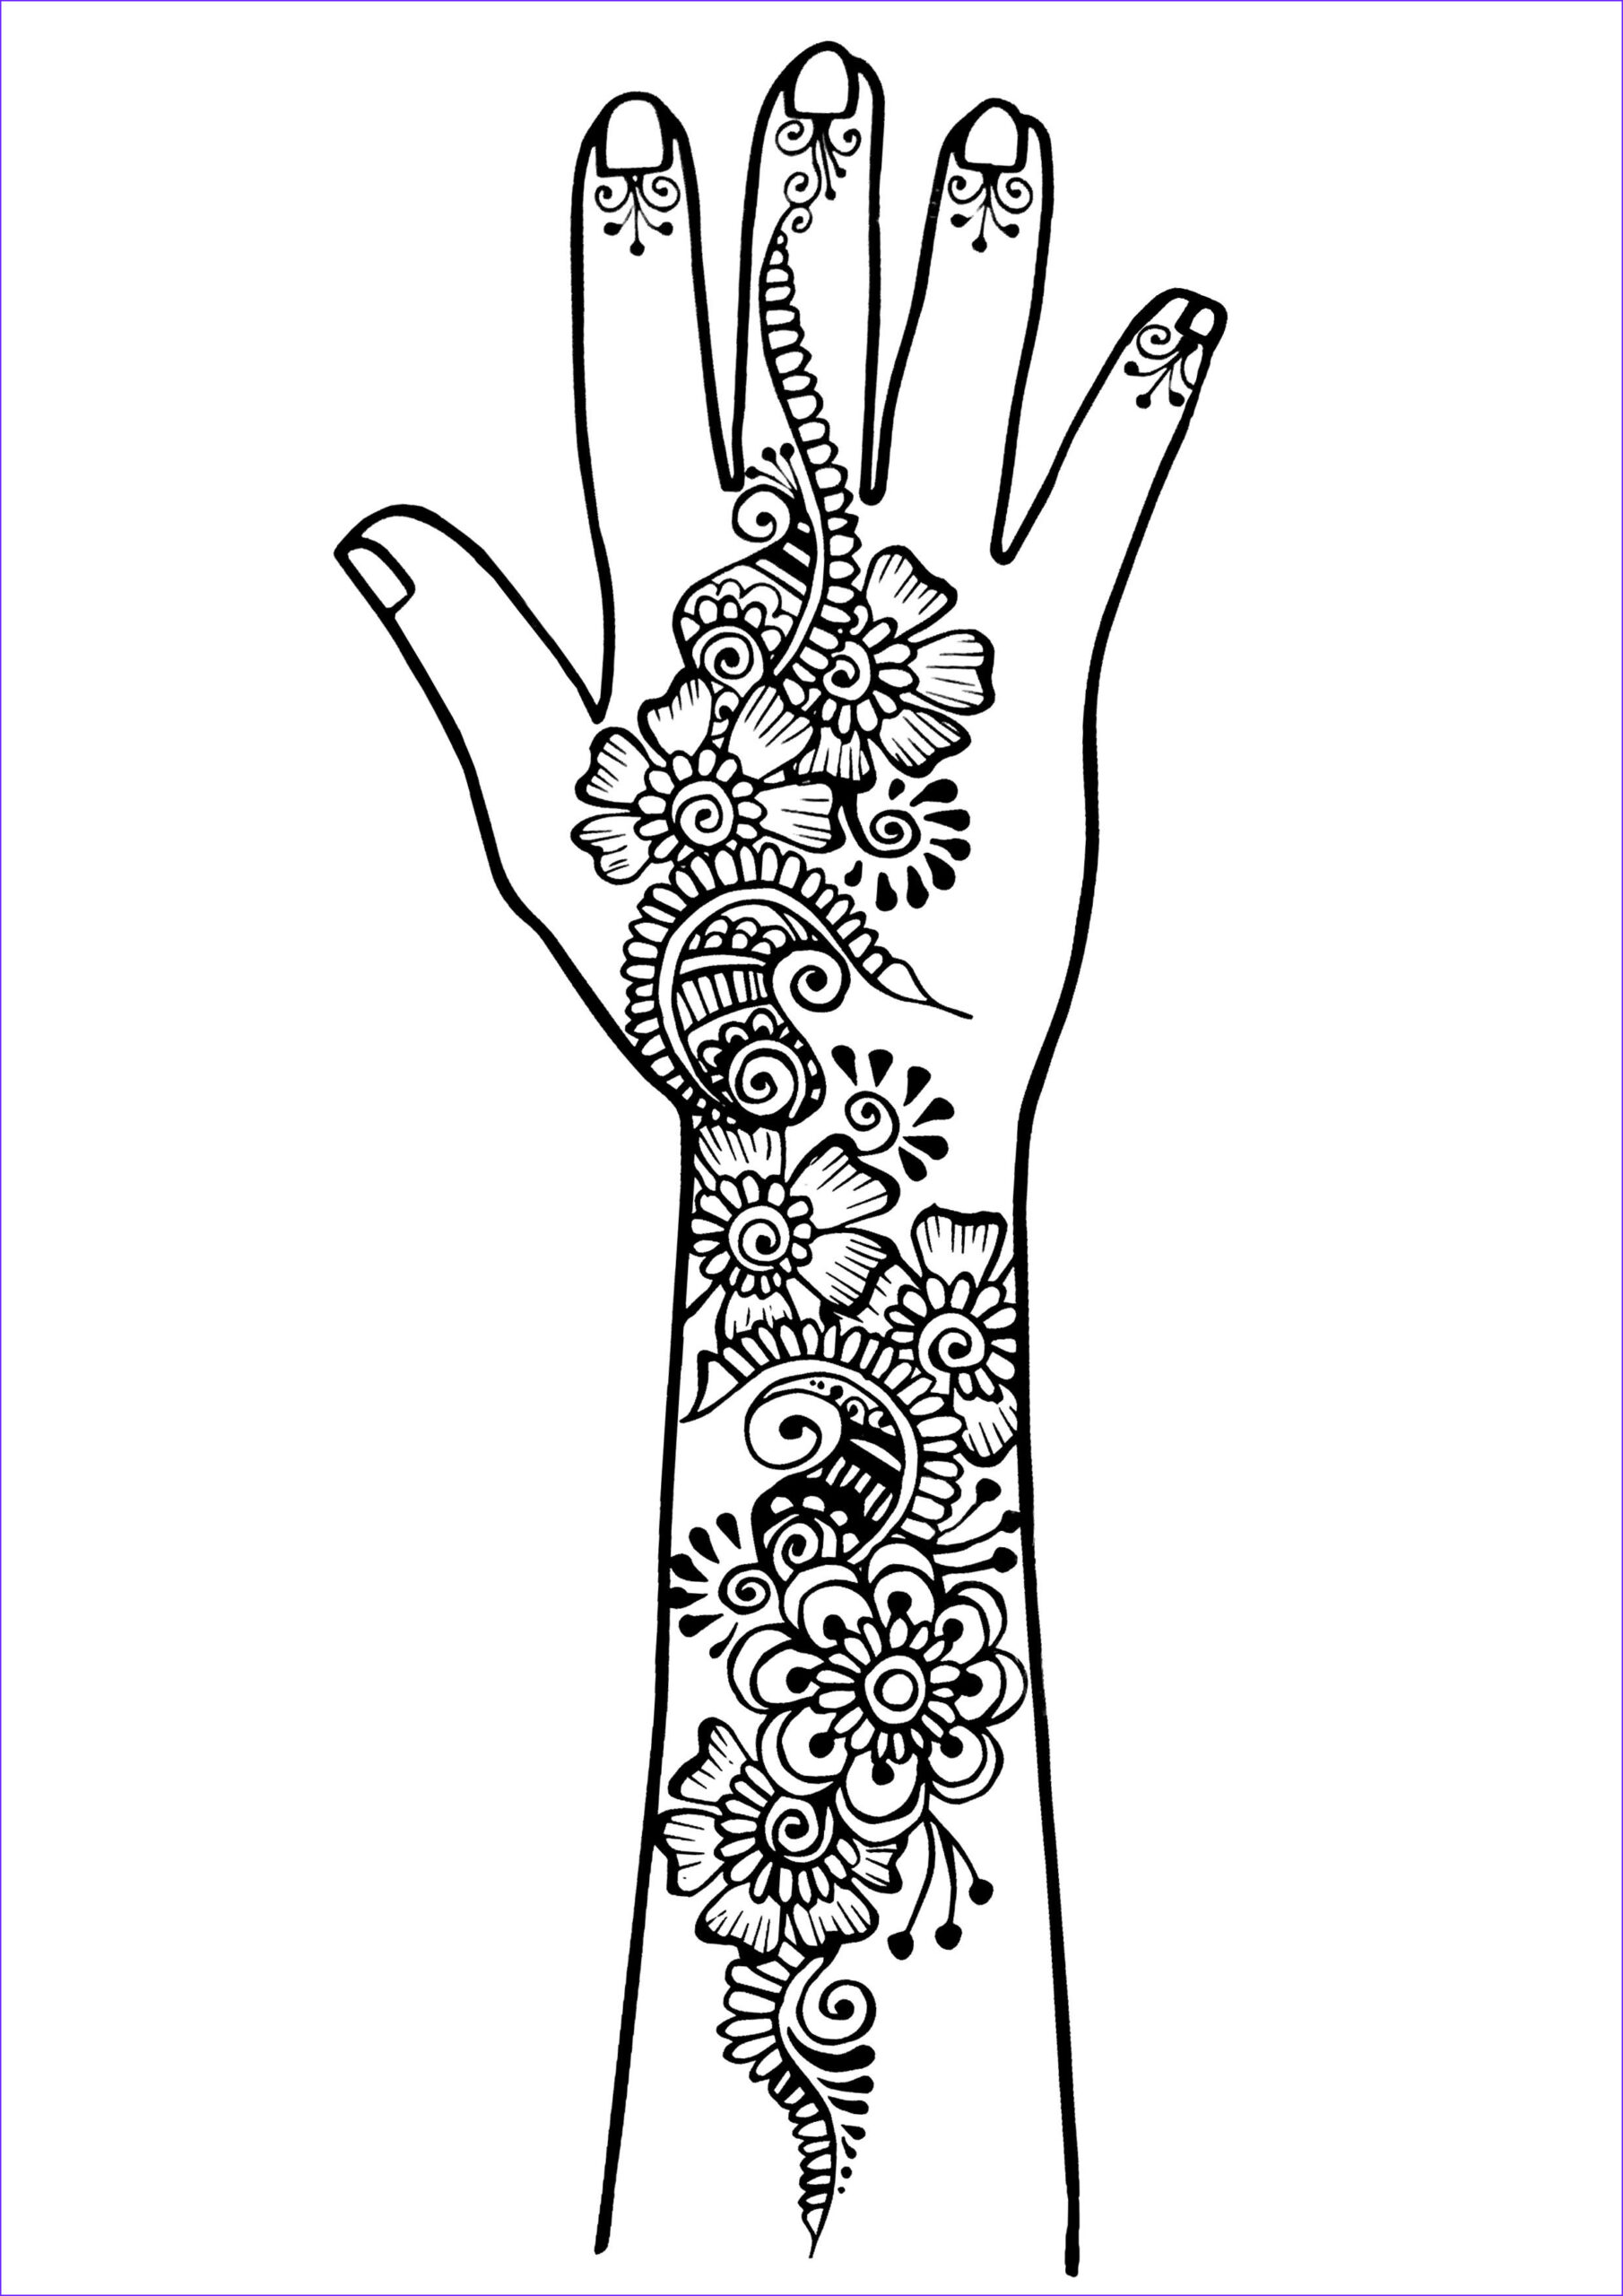 Tattoo Coloring Pages Beautiful Collection Arm and Hand Tattoo 1 Tattoos Adult Coloring Pages